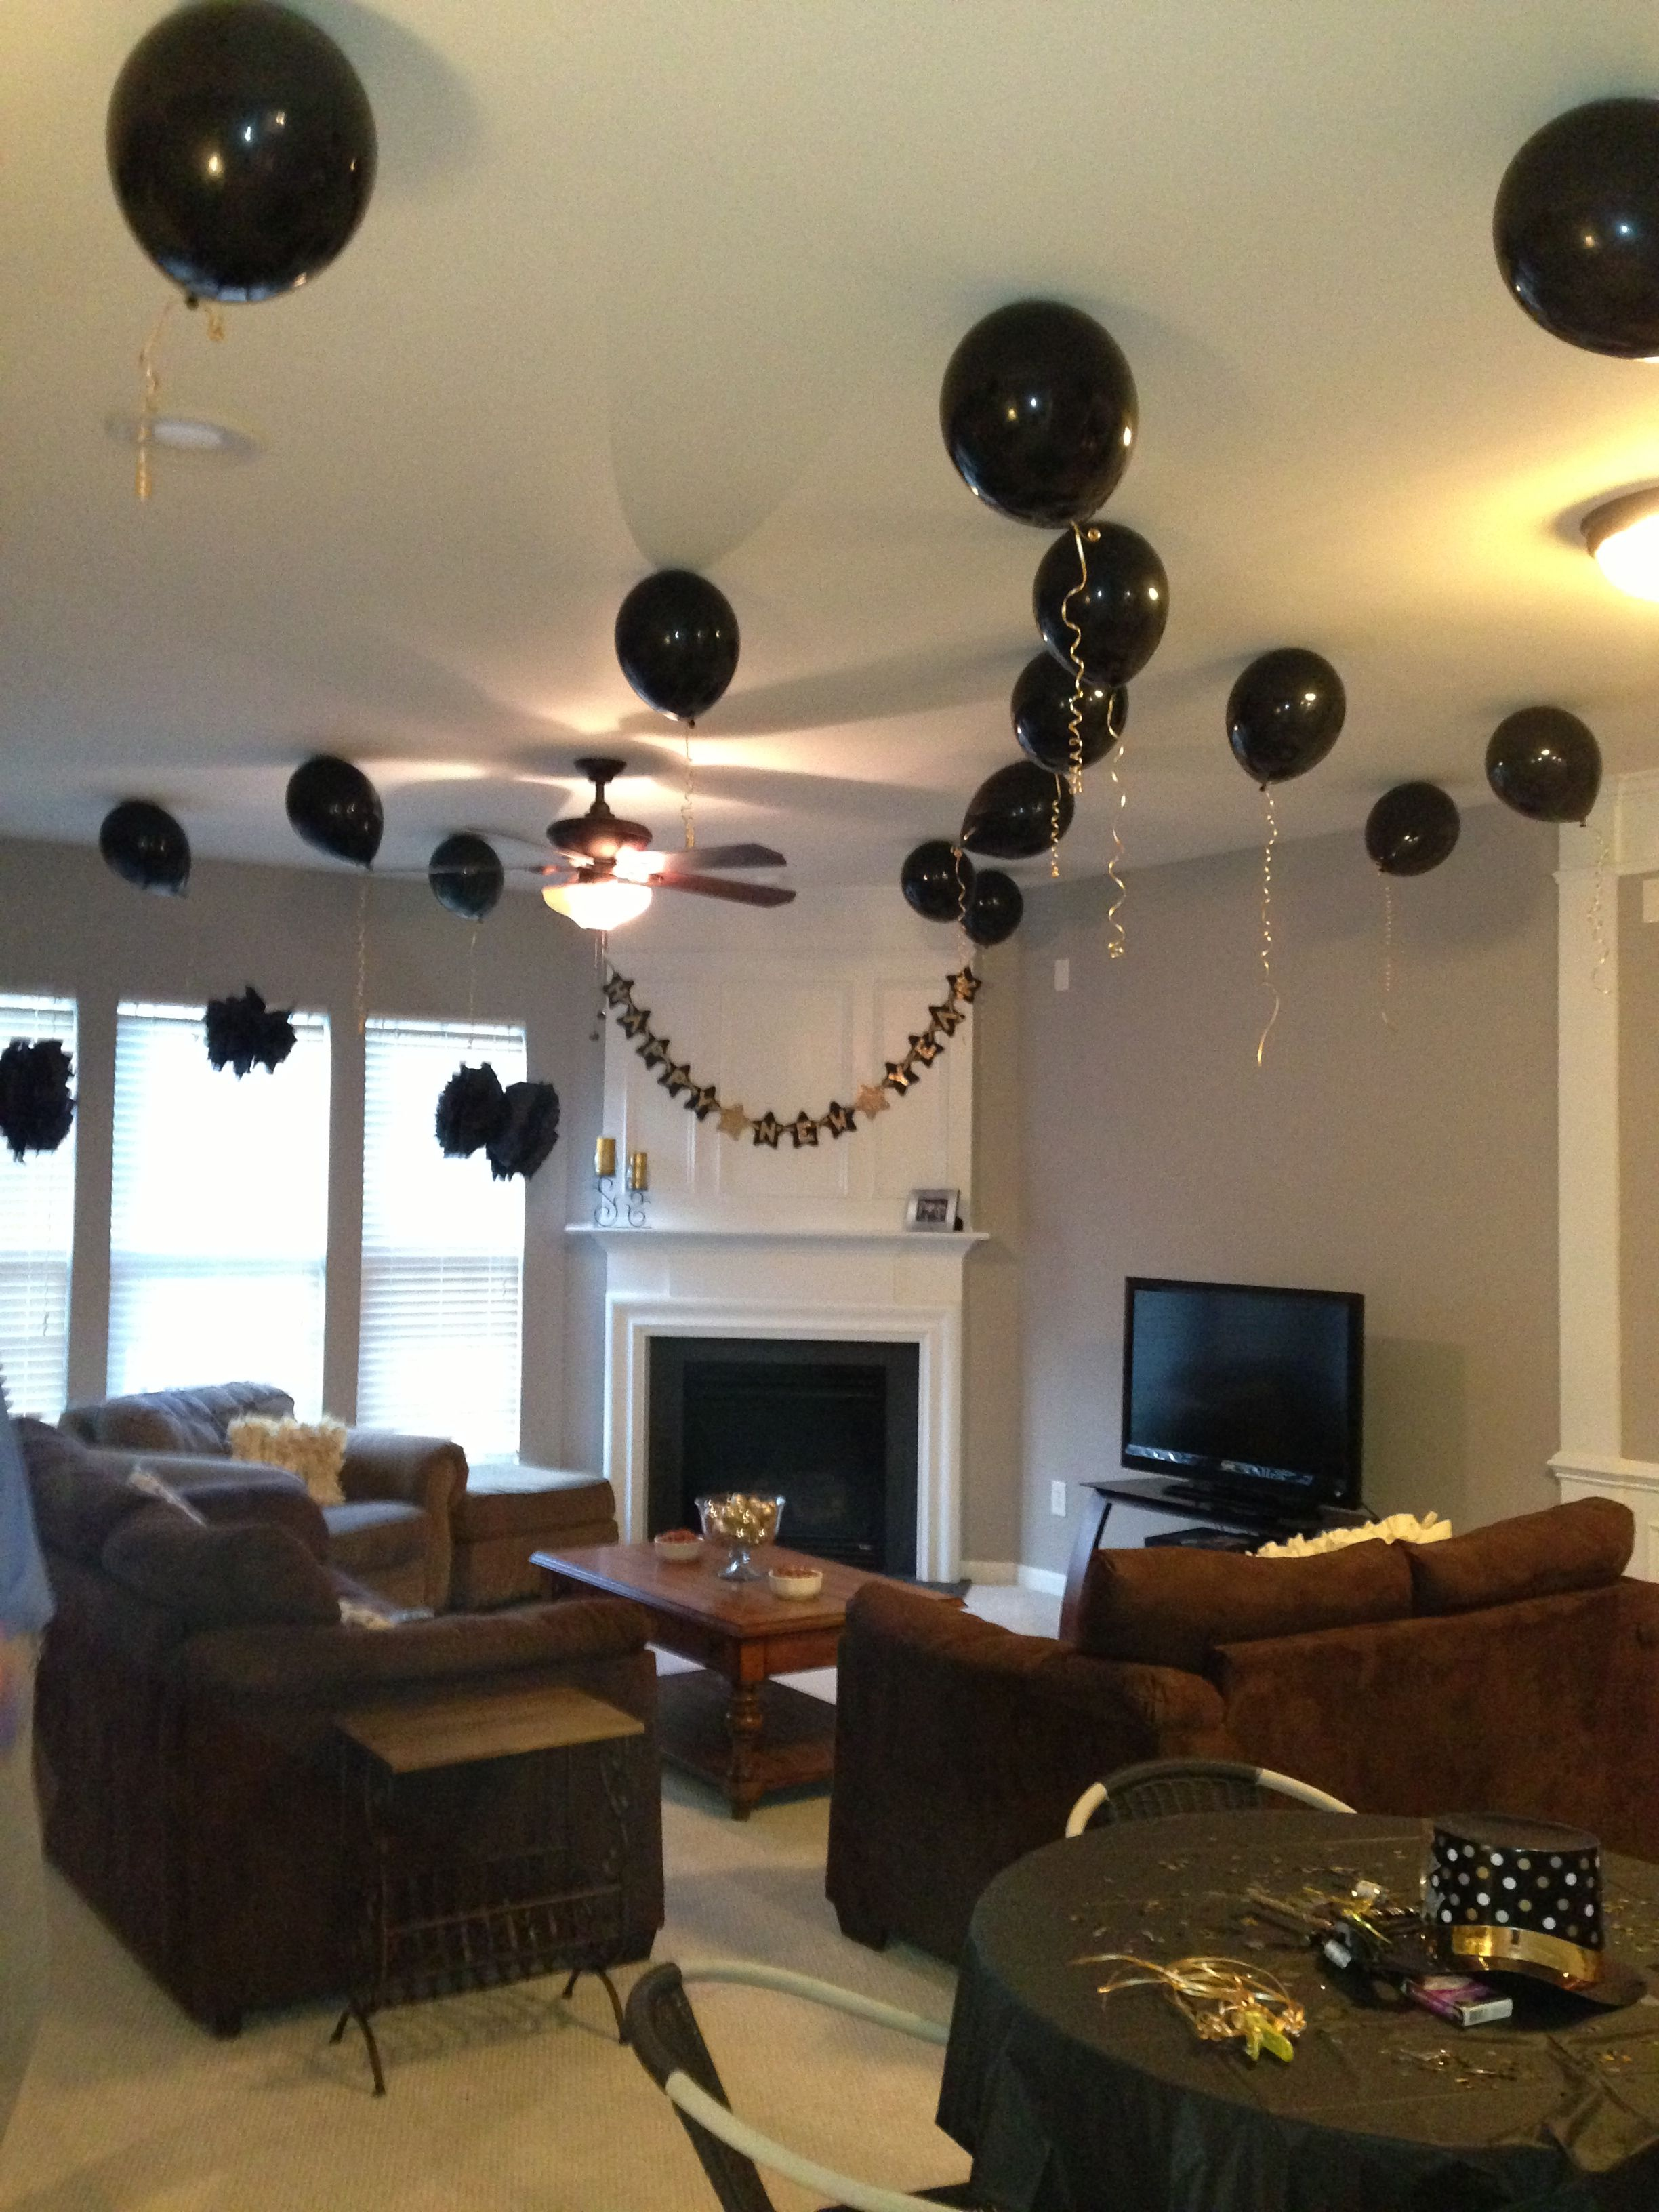 House party decorations, ballons and banner! | House party ...